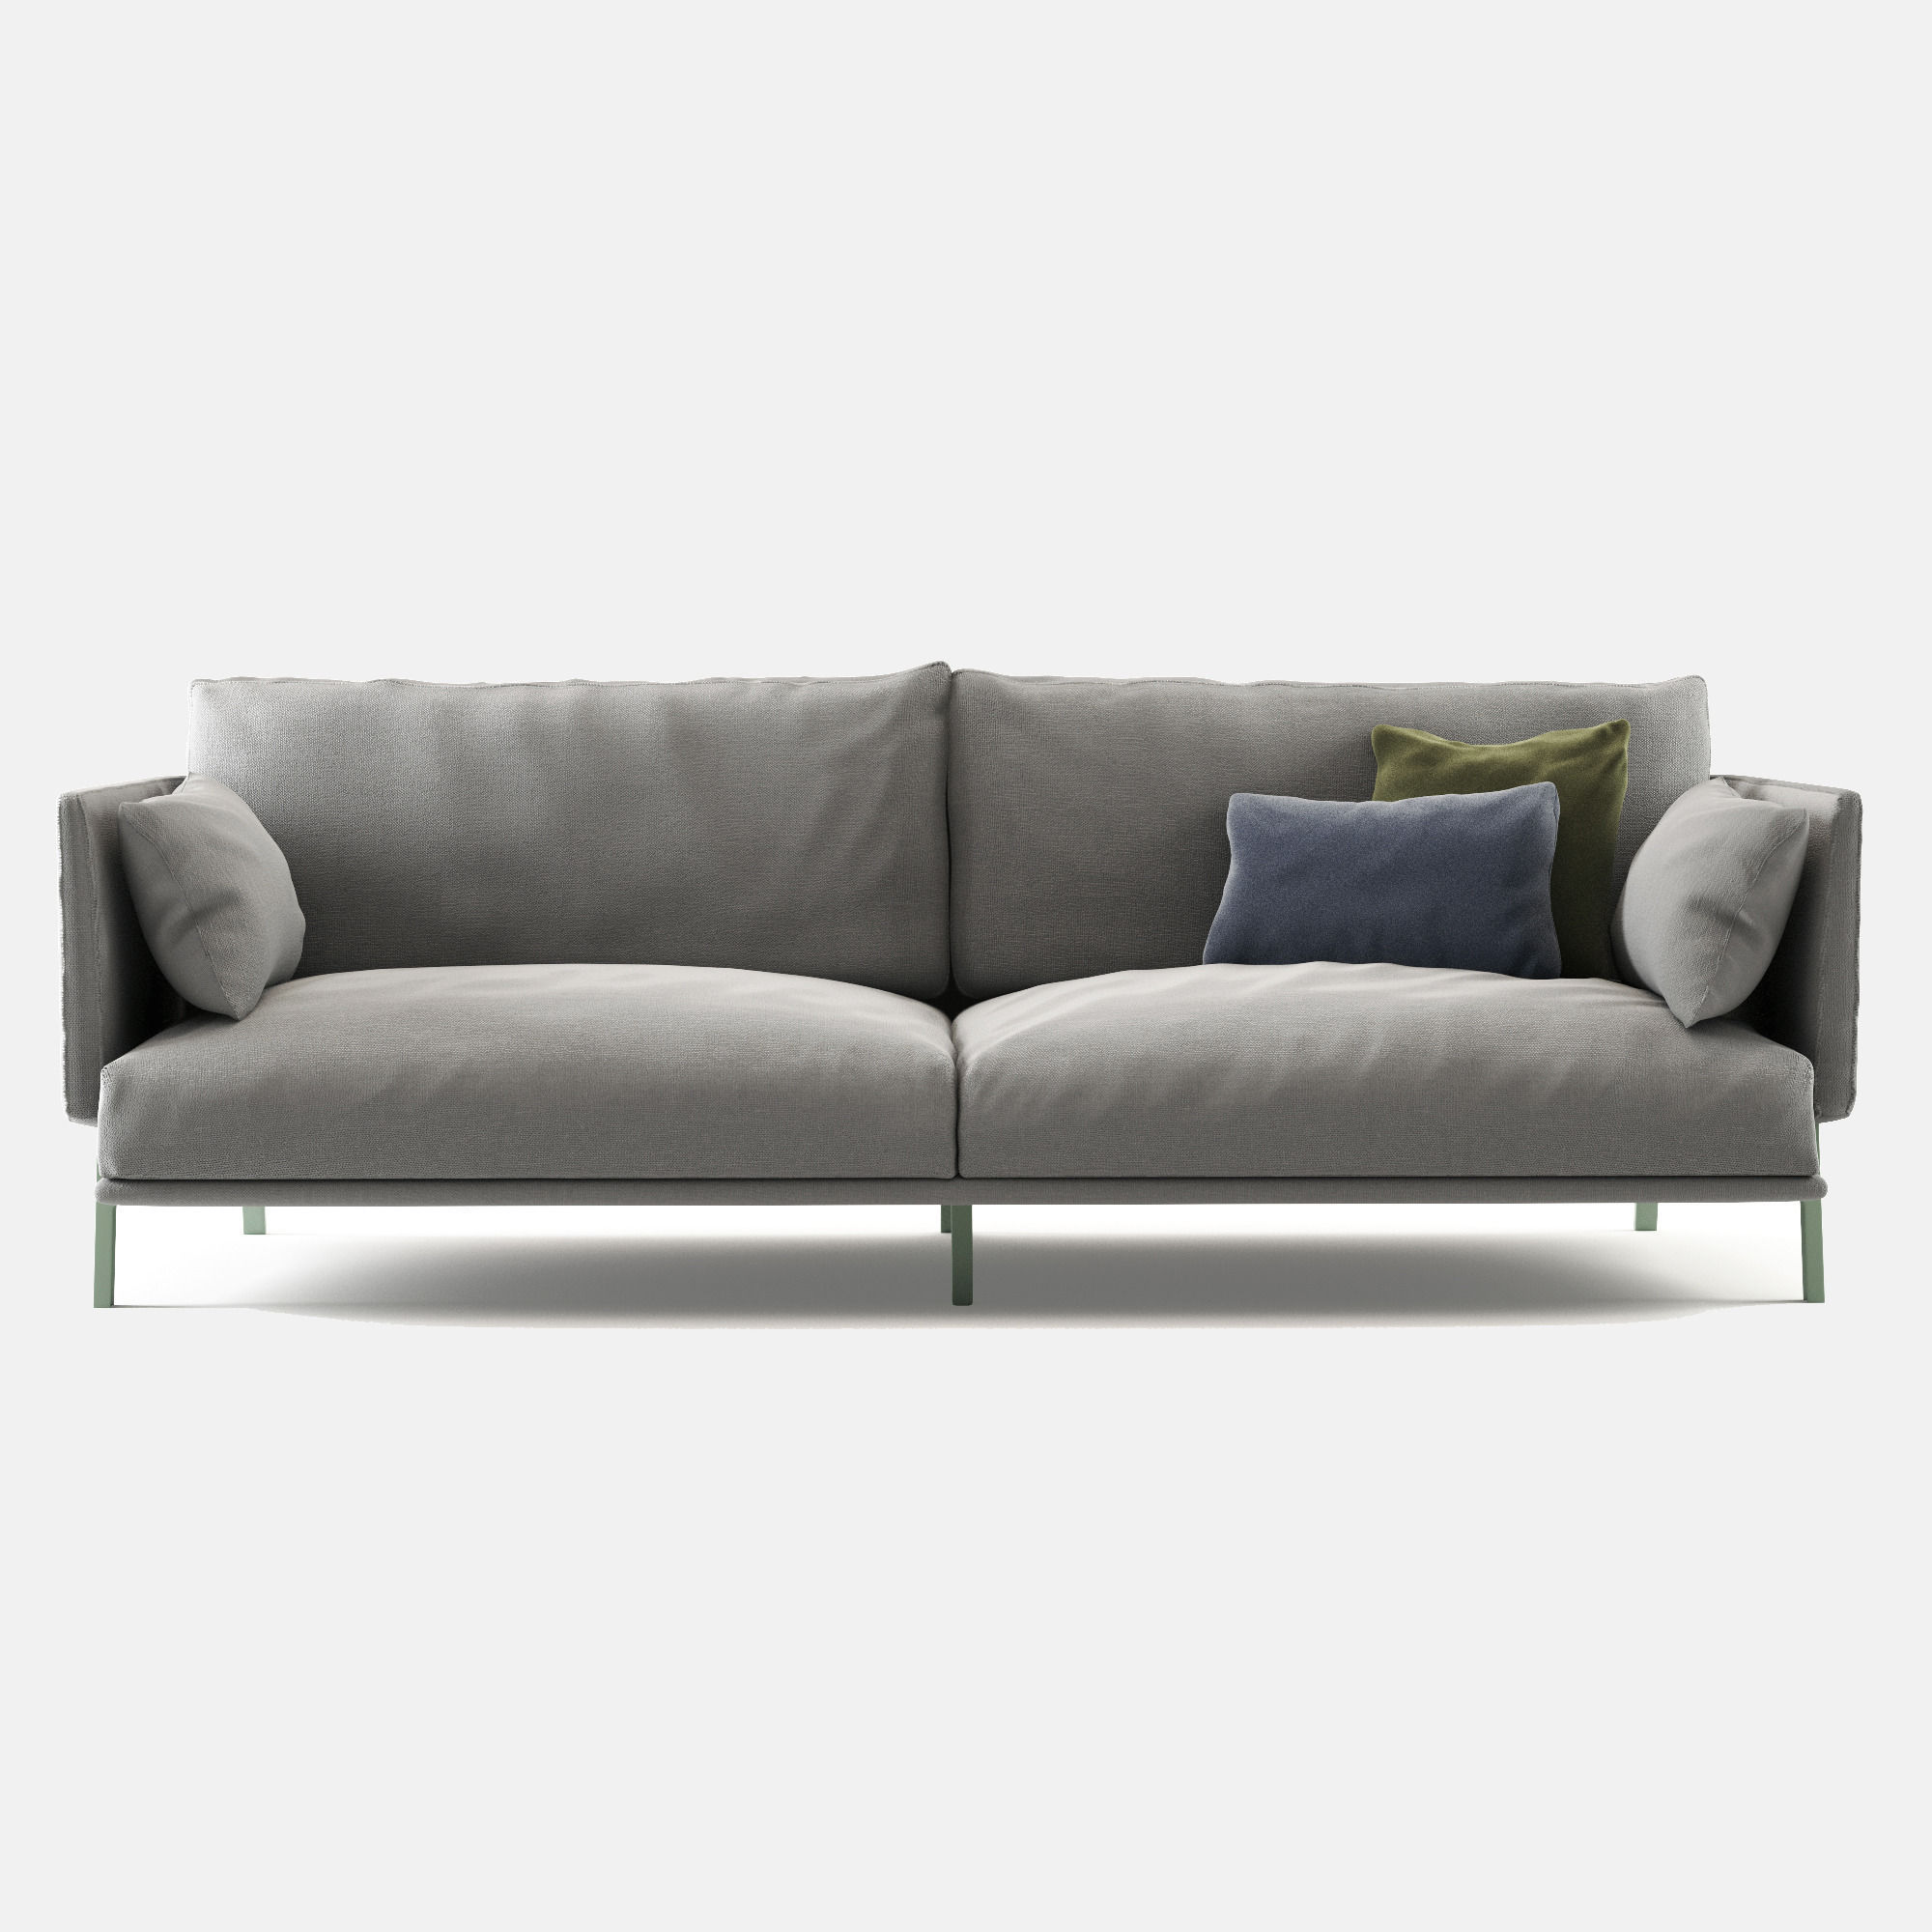 Structure sofa bonaldo 3d model max obj fbx for Sofa 3d model